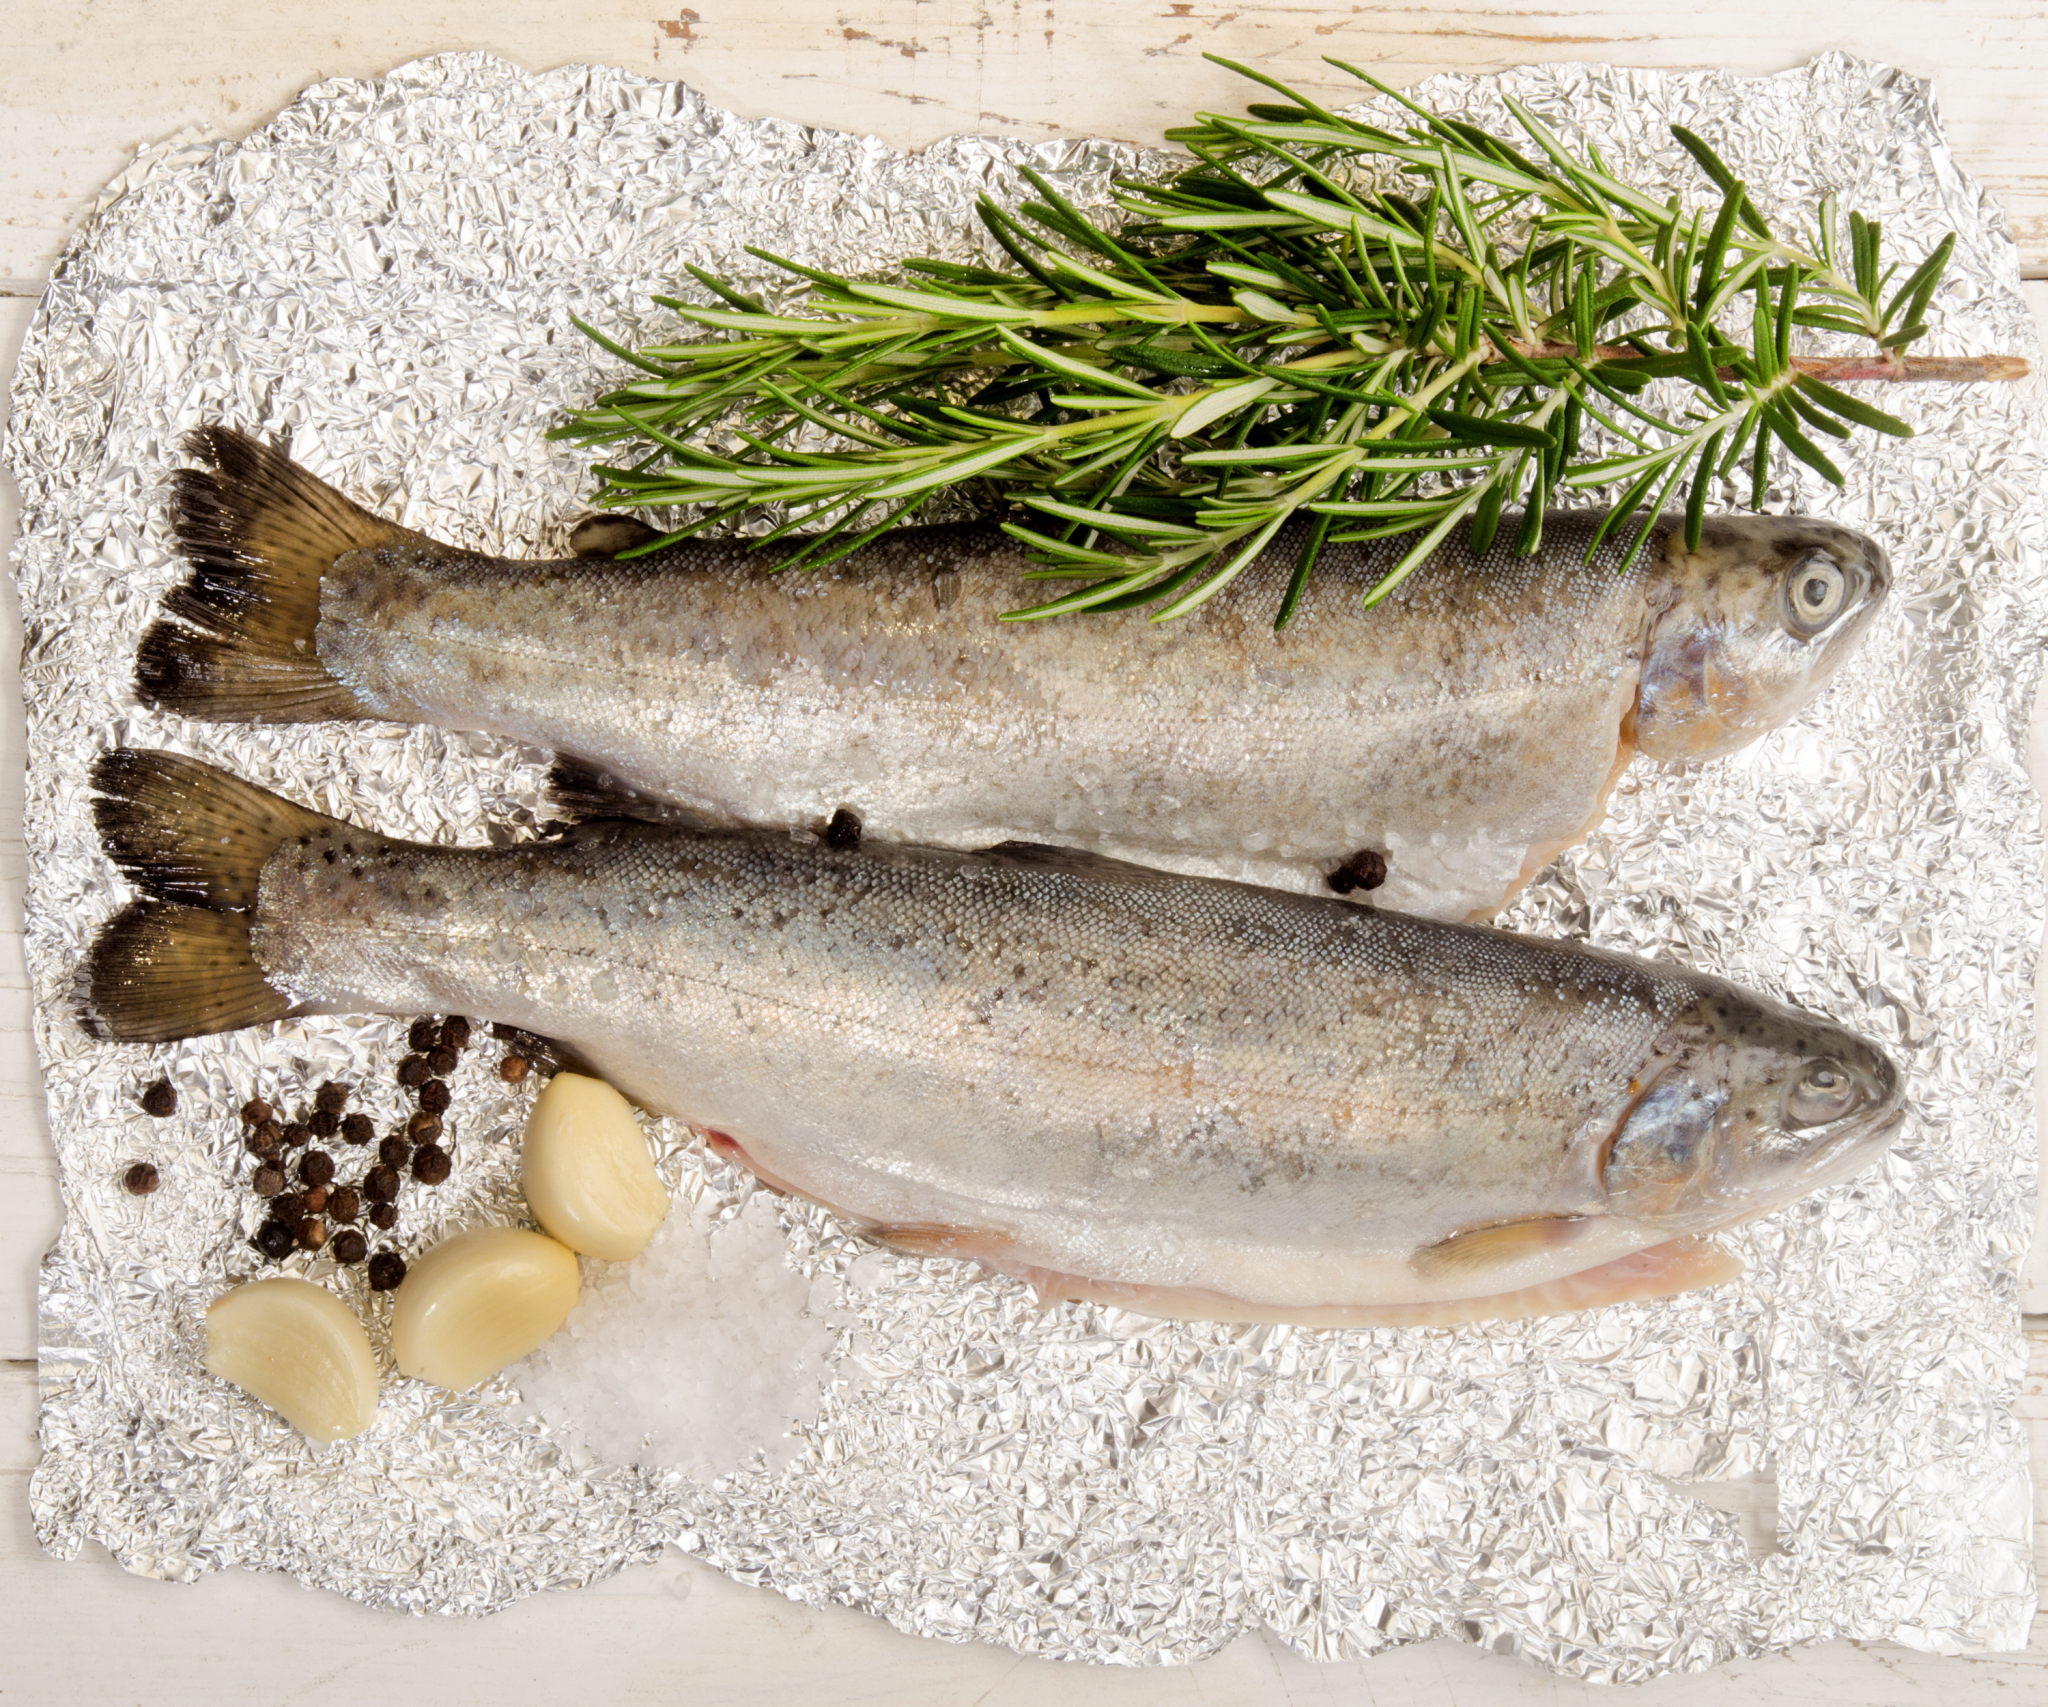 Trout on foil next to garlic, salt and herbs